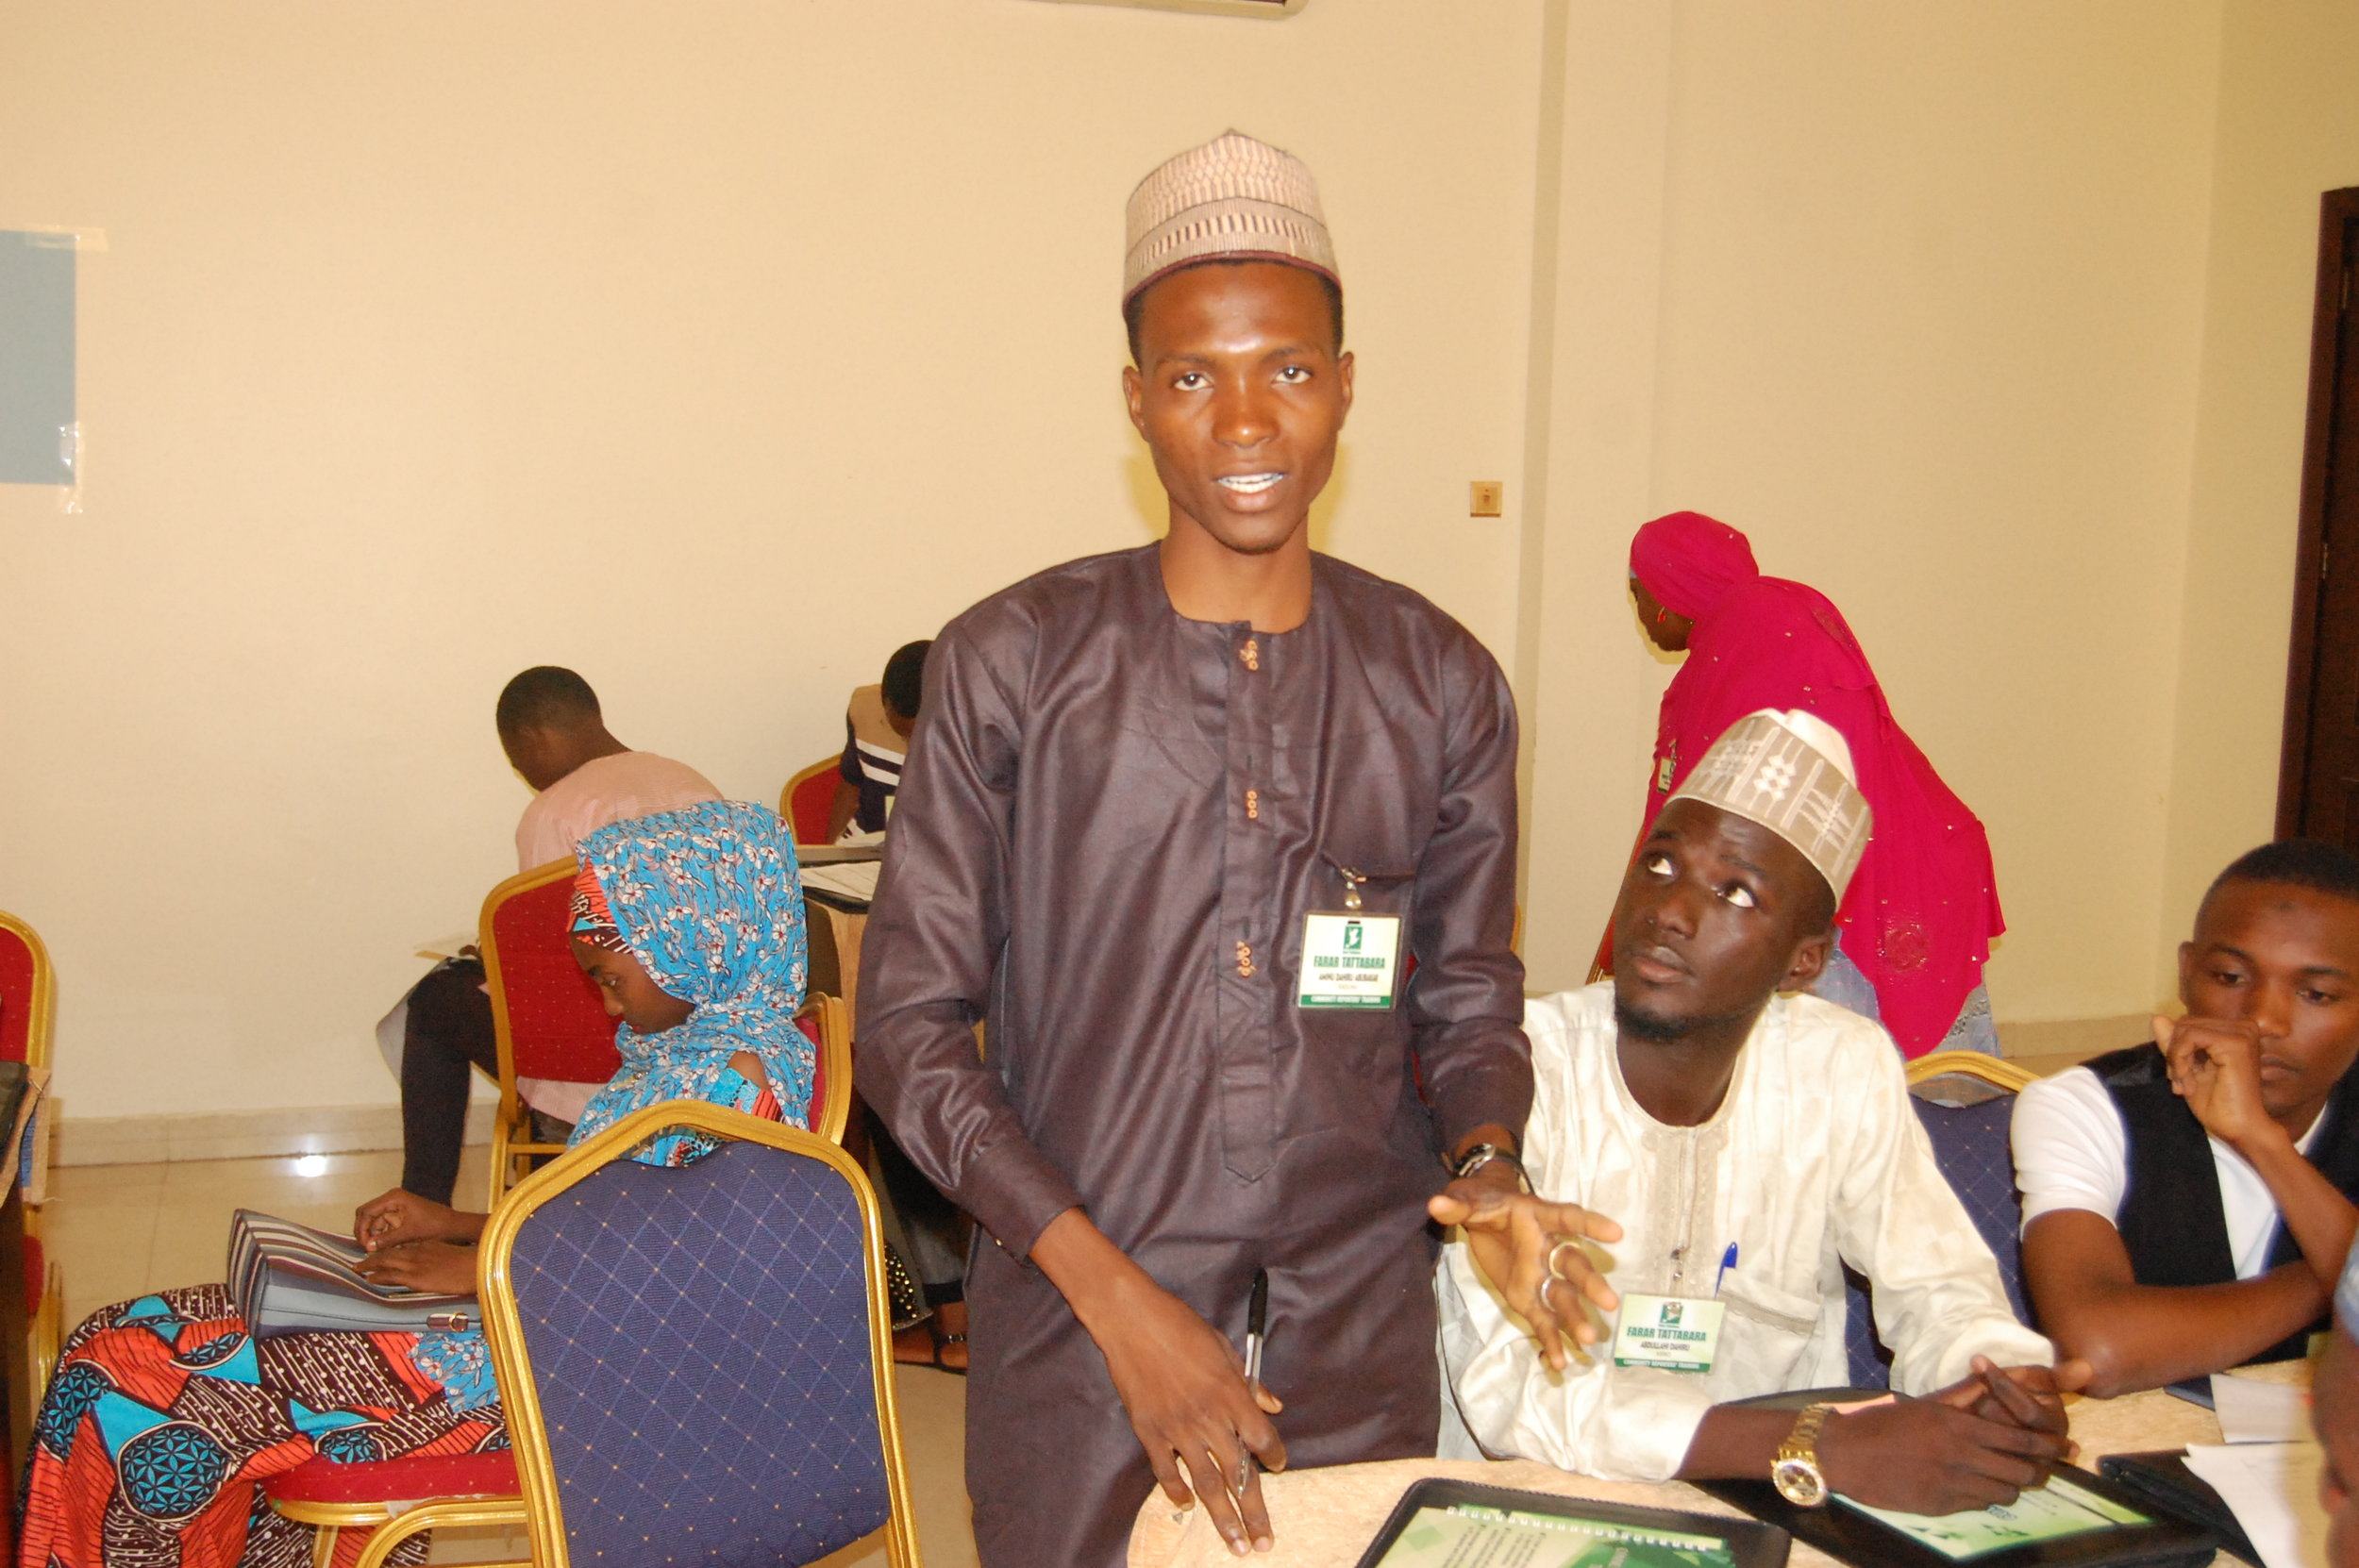 Aminu Dahiru Abubakar from Kaduna state answering a question during the workshop.